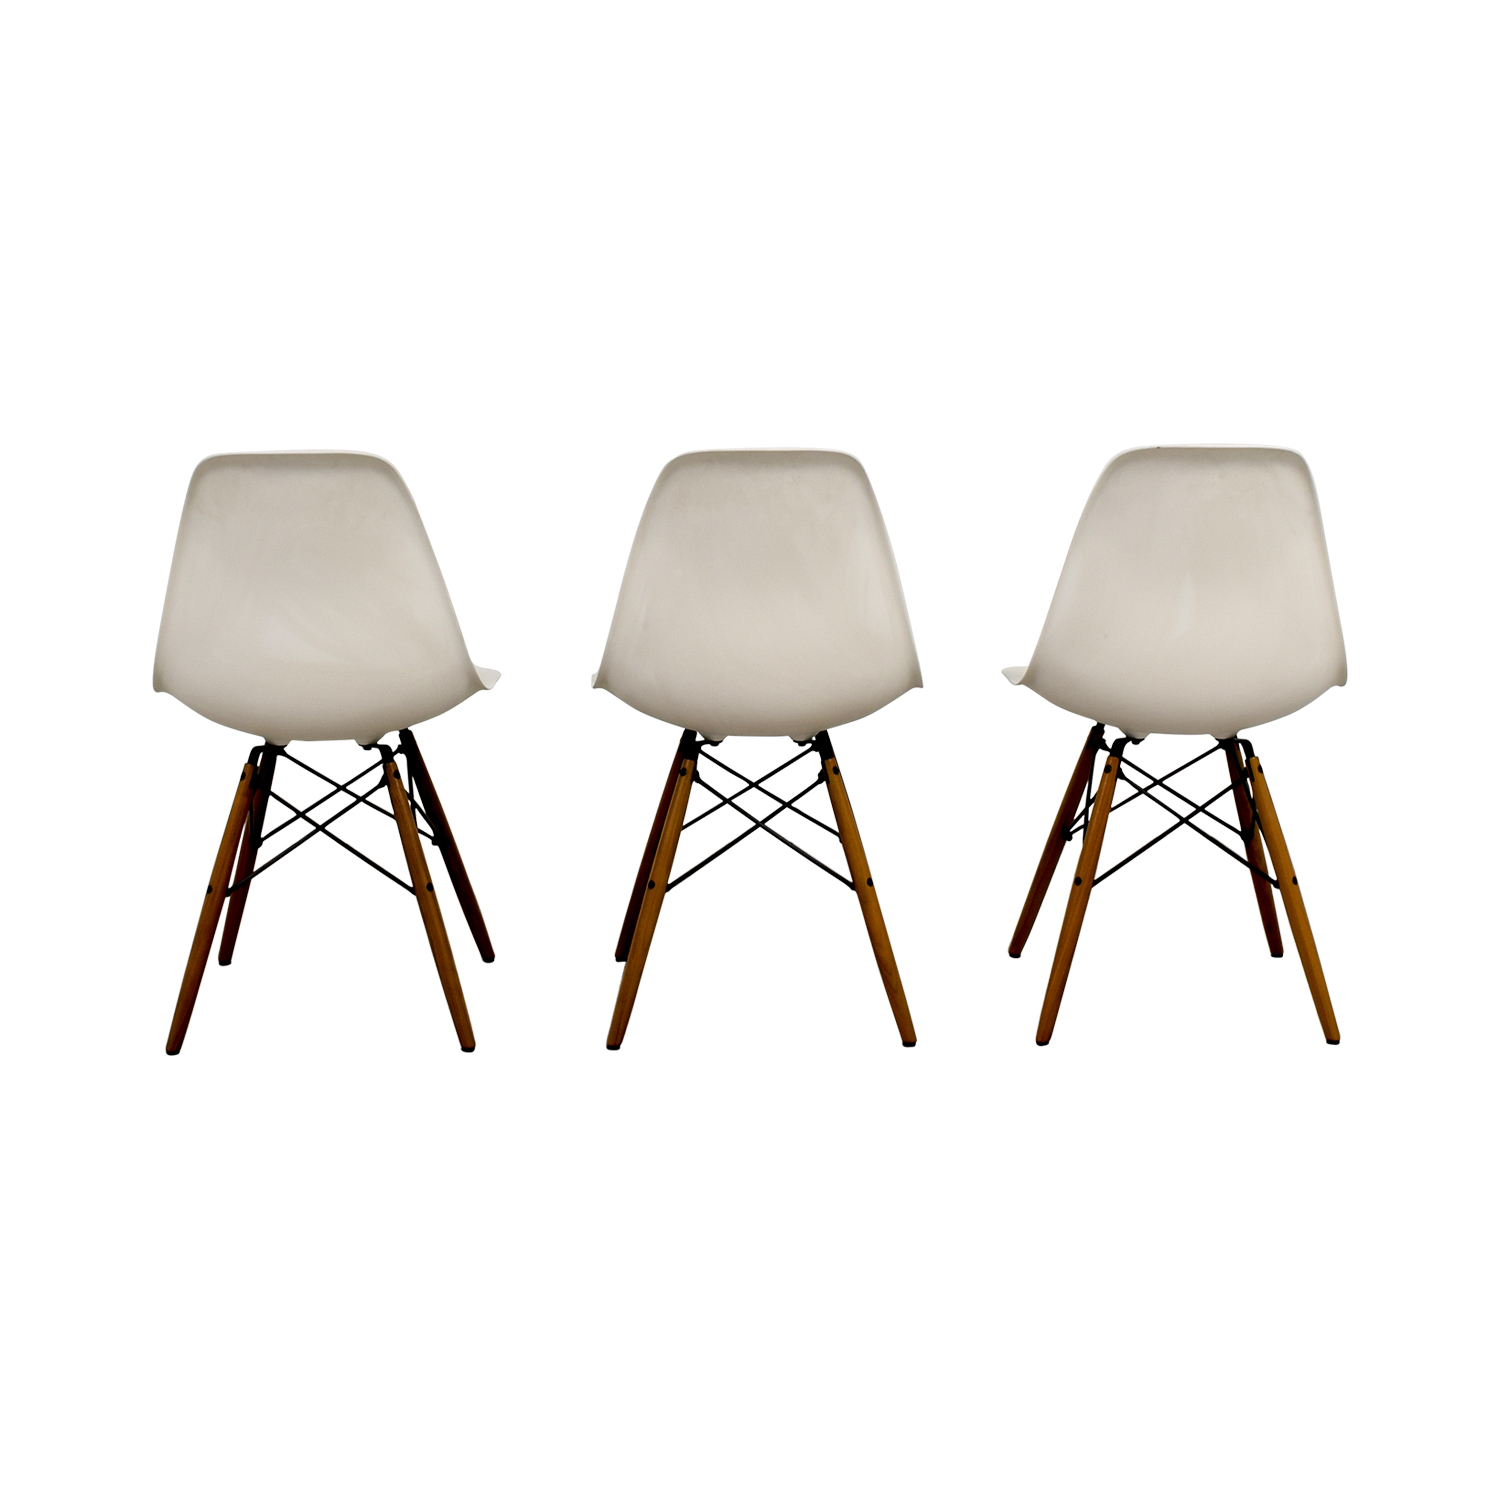 43% OFF Eames Molded Plastic Side Chairs Chairs